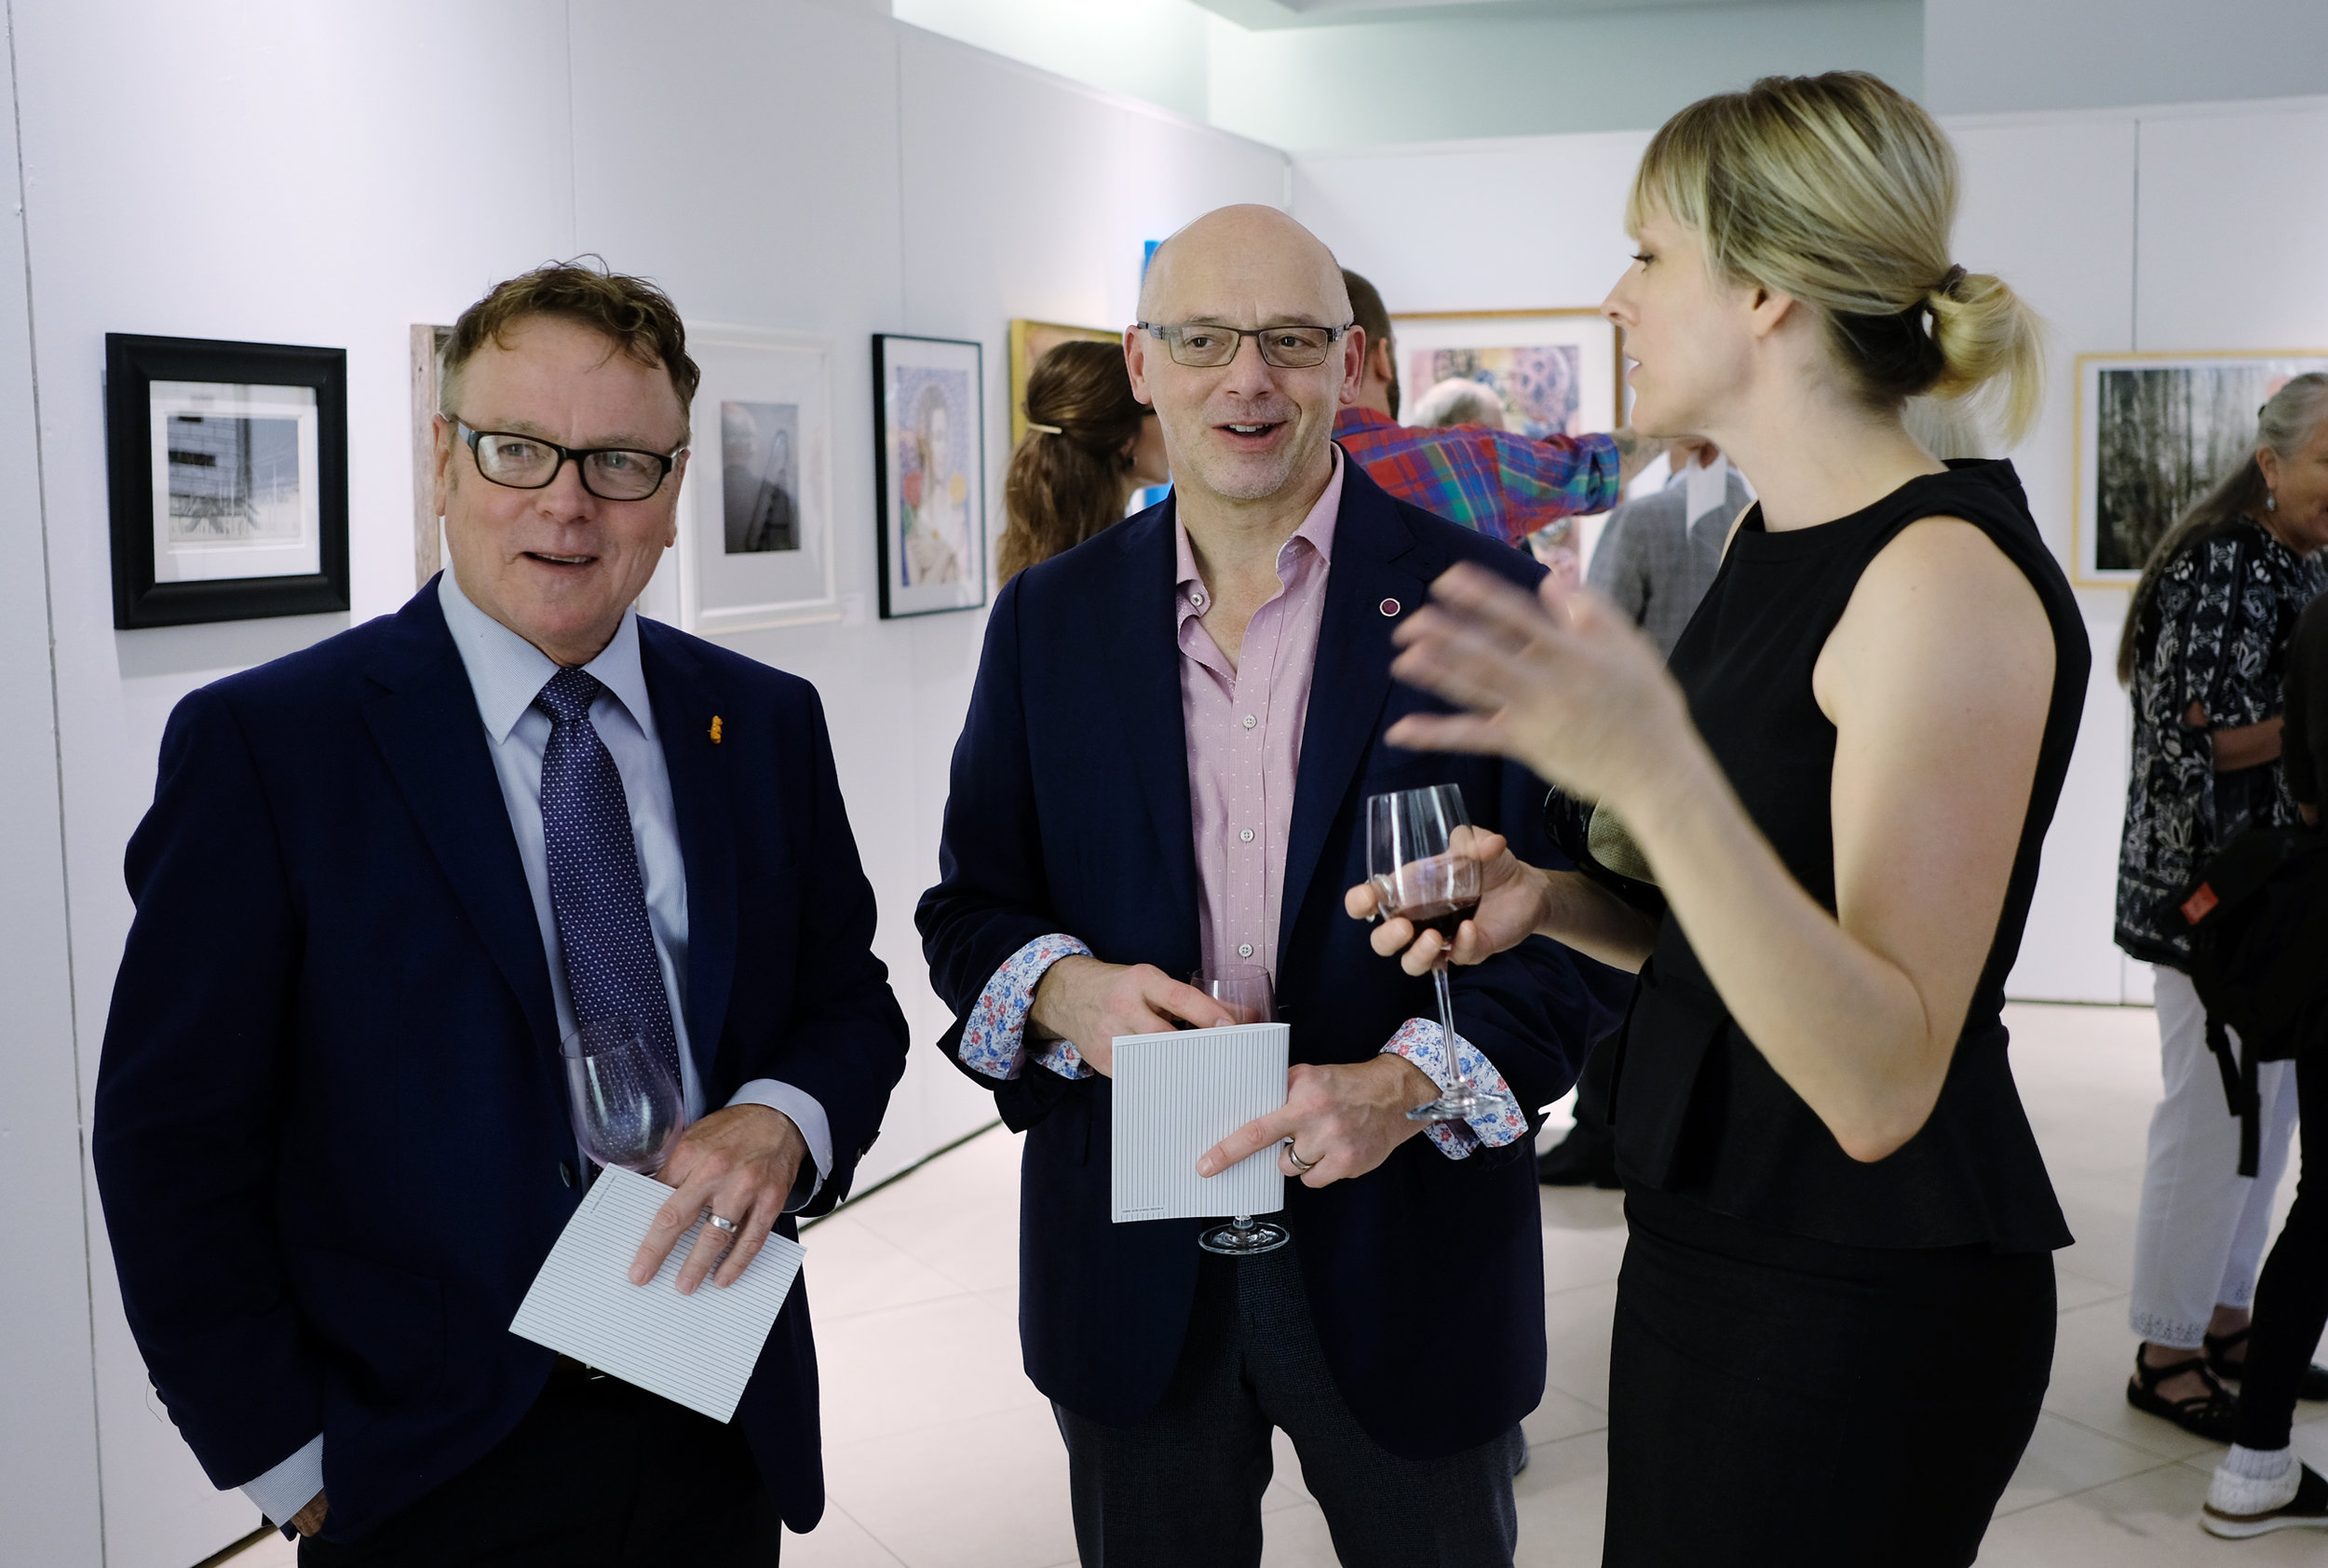 Paul Ford, Left to right, Jerry Morosco and artist Brenda Stumpf look at art at The preview opening of the 106th Annual of the Associated Artists of Pittsburgh at the SouthSide Works, September 13, 2018. Photo by Bill Wade.